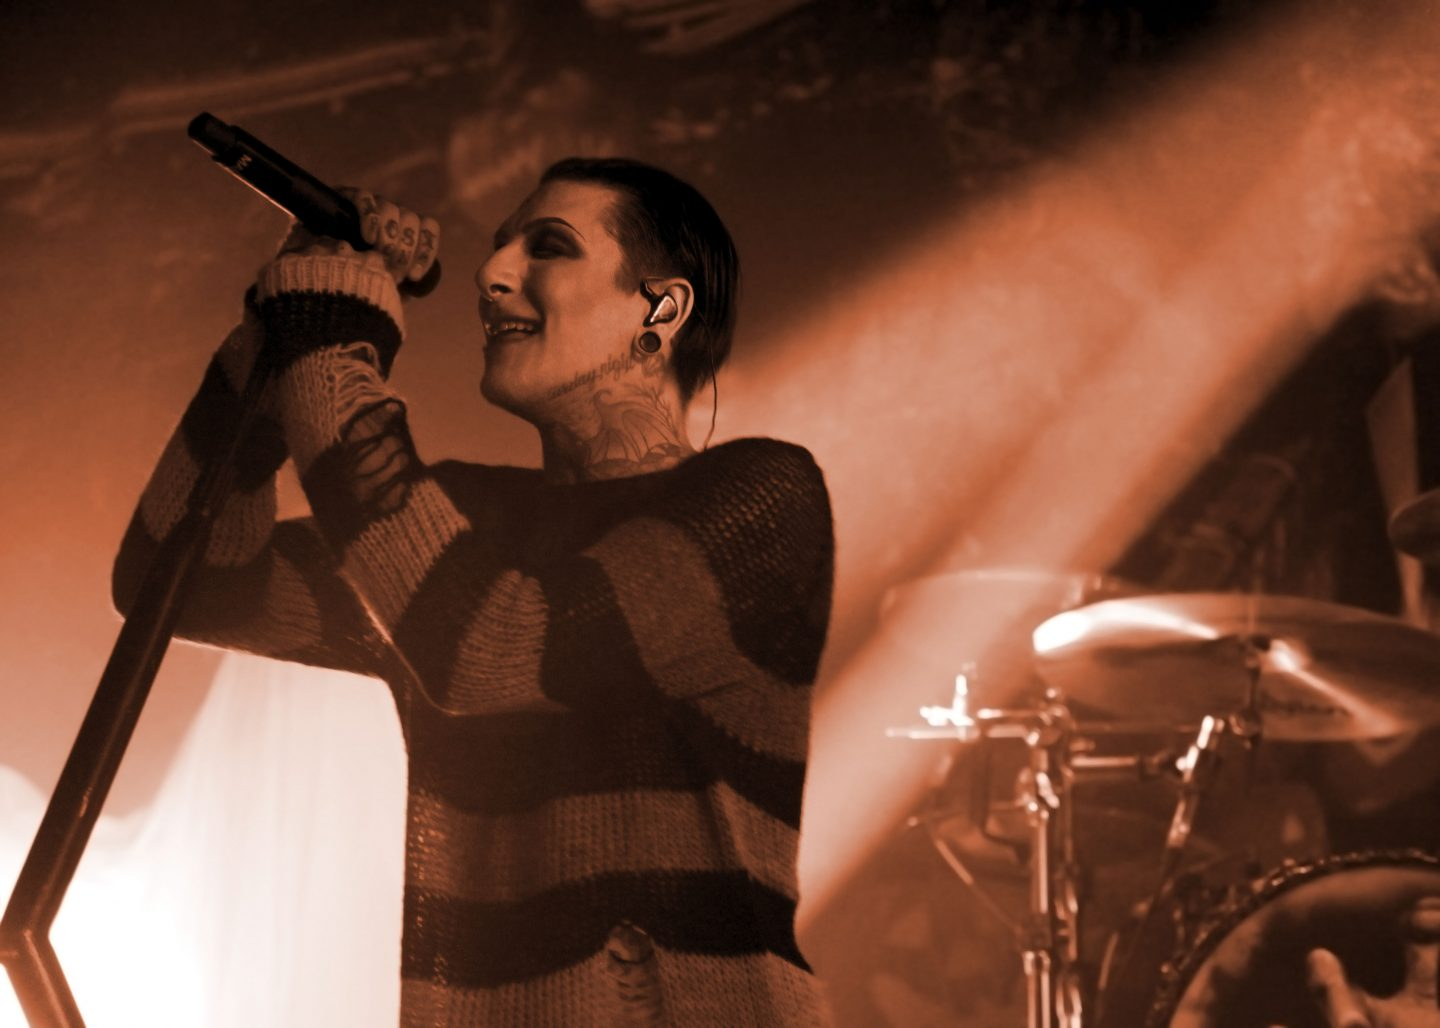 Motionless in White at The Apollo Theatre AC by Sanchi Engineer